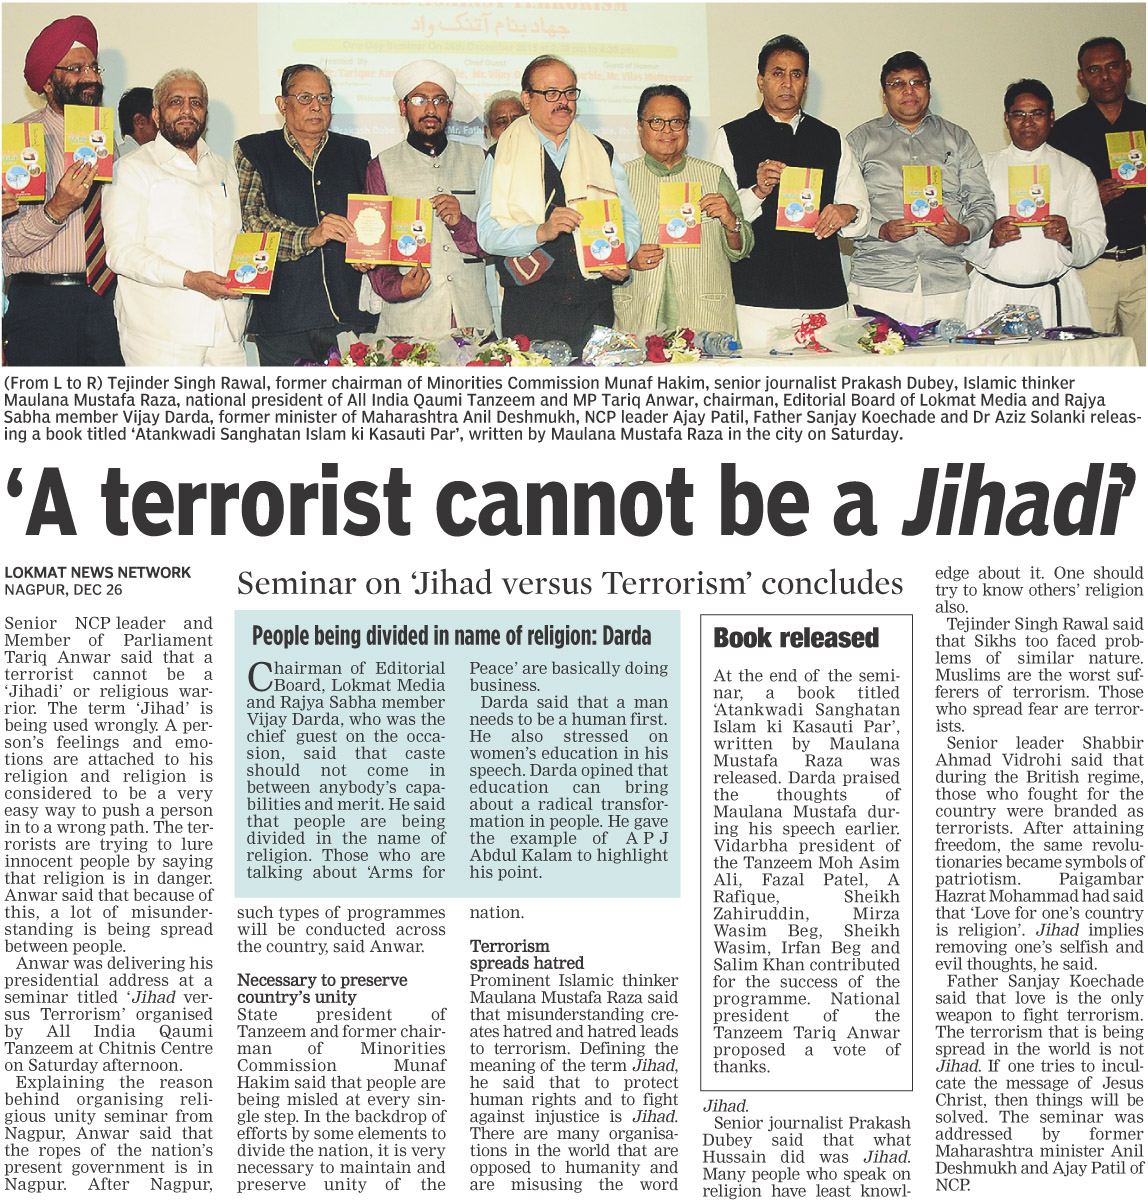 'A terrorist cannot be a Jihadi'